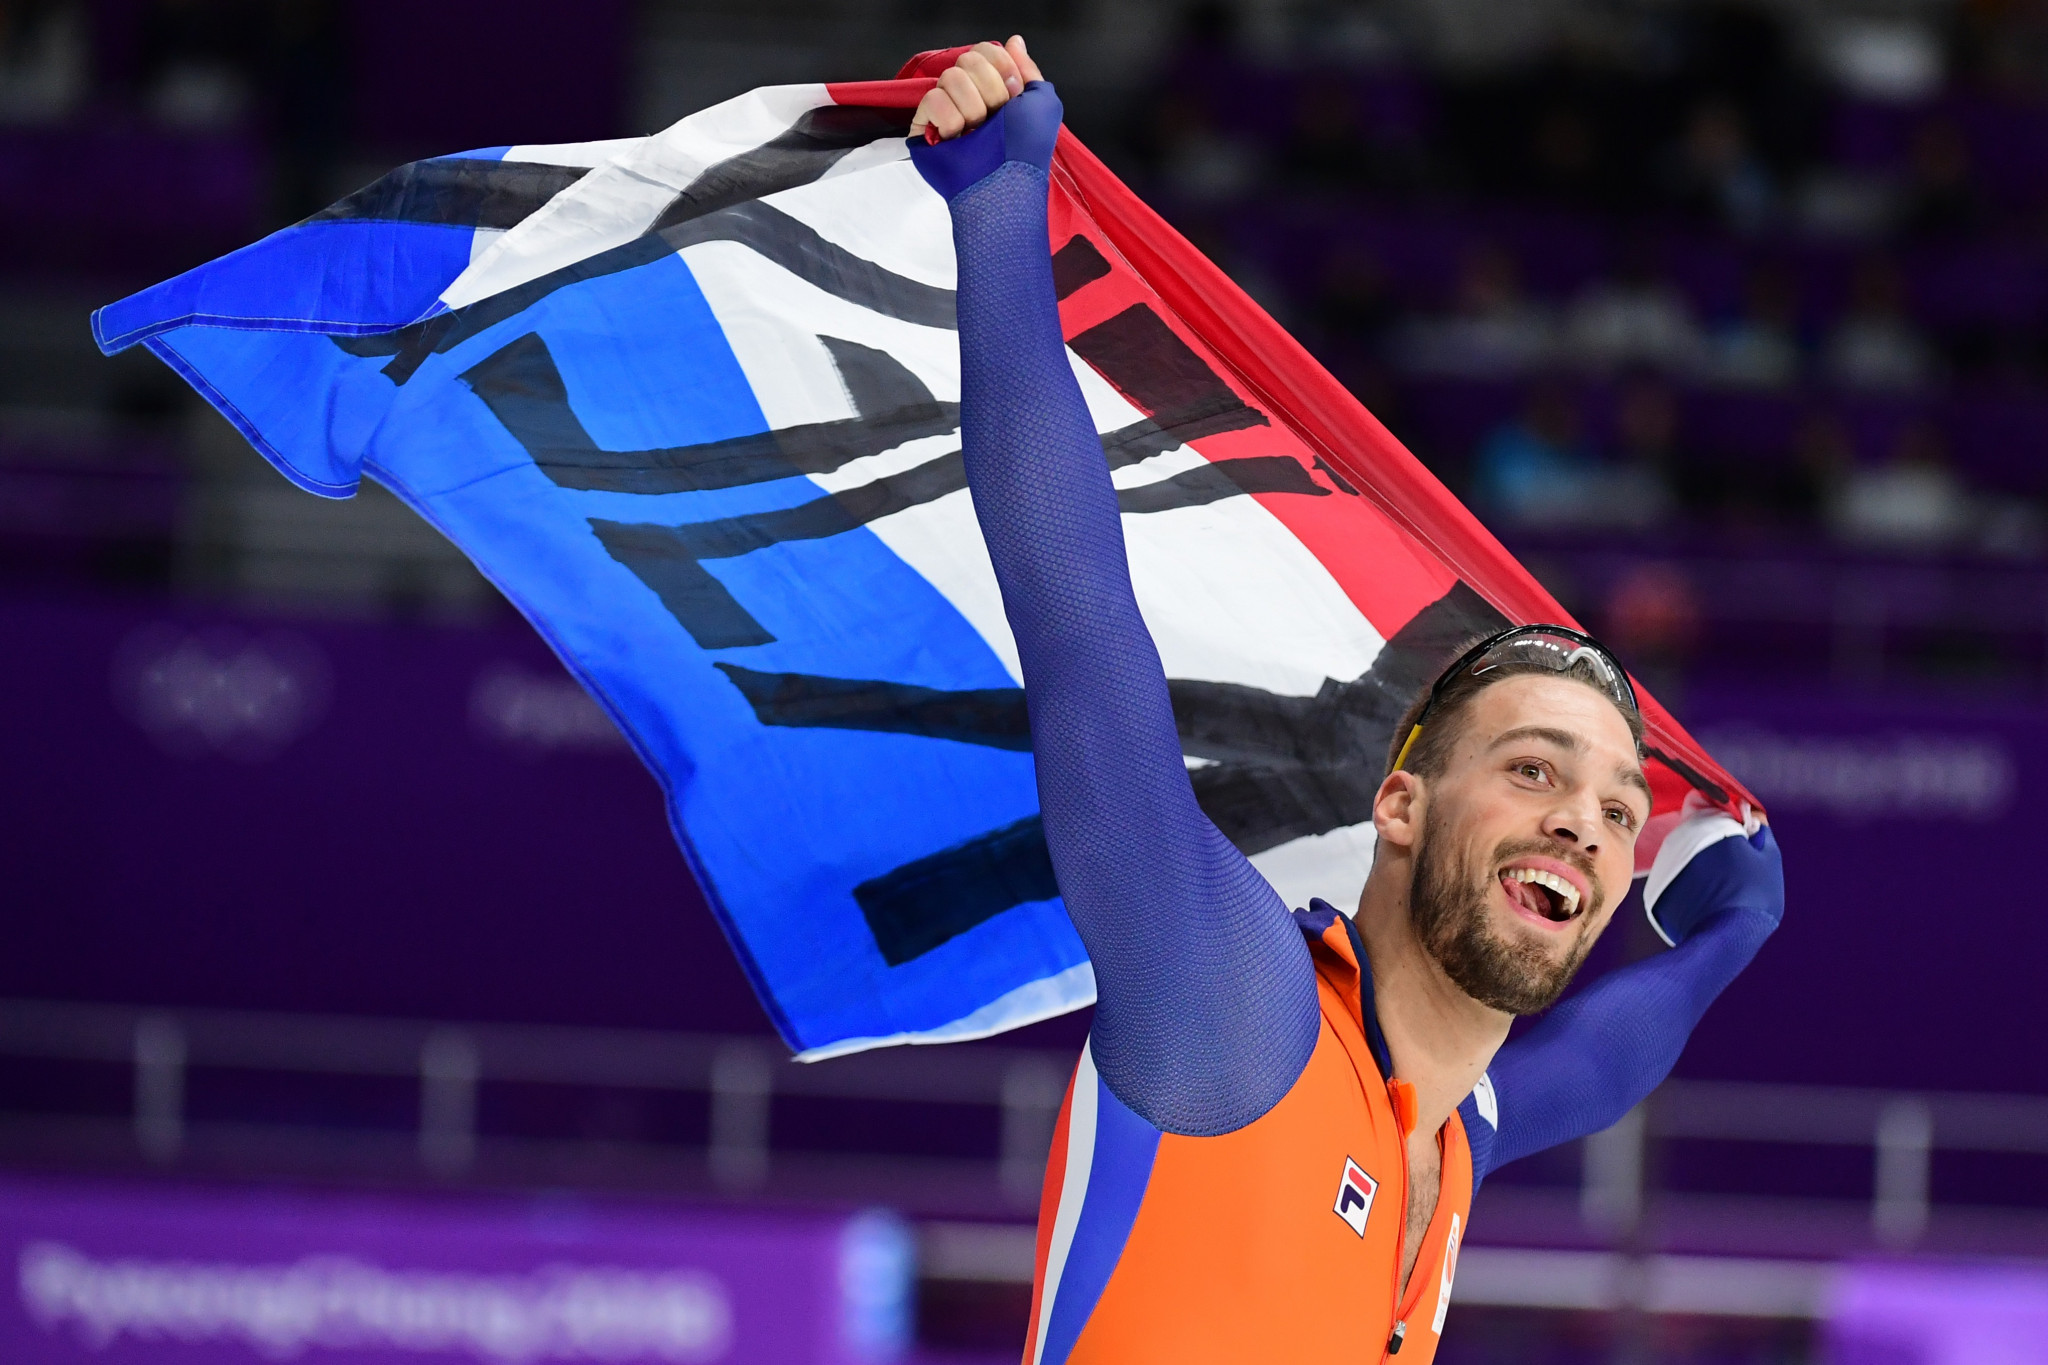 Dutchman becomes only third speed skater in Olympic history to compete 1,000m and 1,500m double